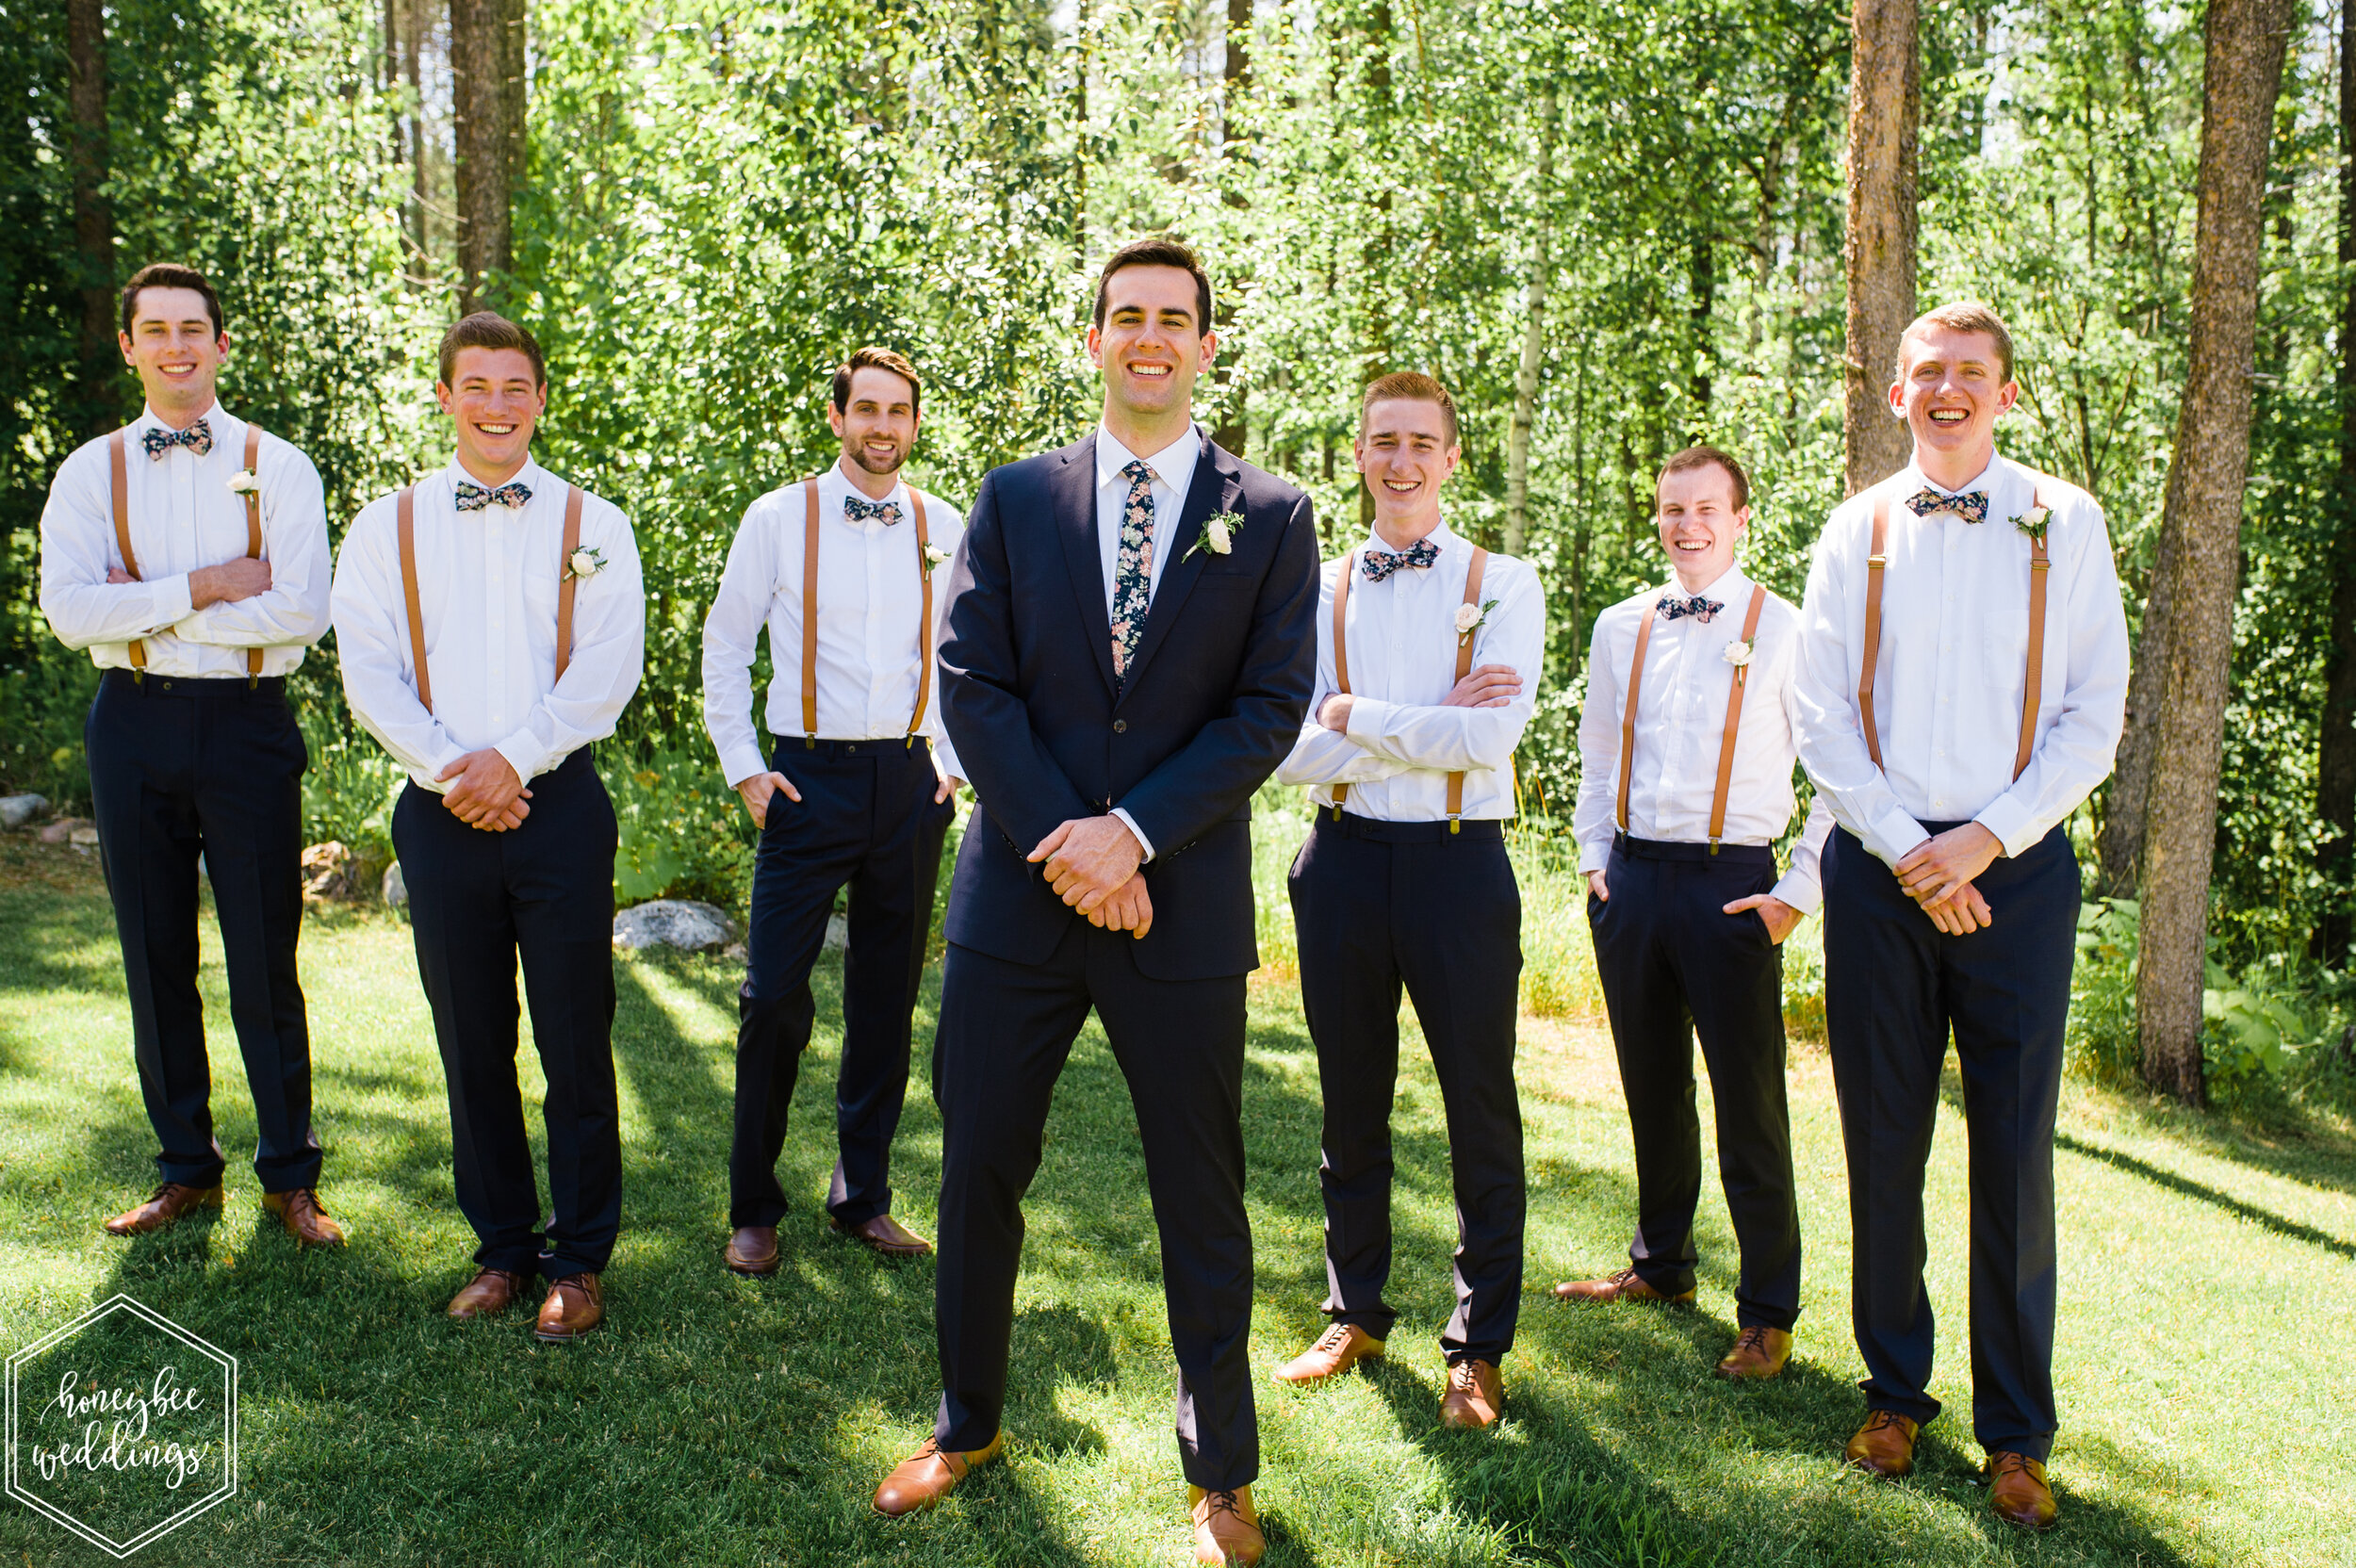 063Glacier National Park Wedding_Glacier Outdoor Center_Honeybee Weddings_Anna & Seth_July 21, 2019-2052.jpg